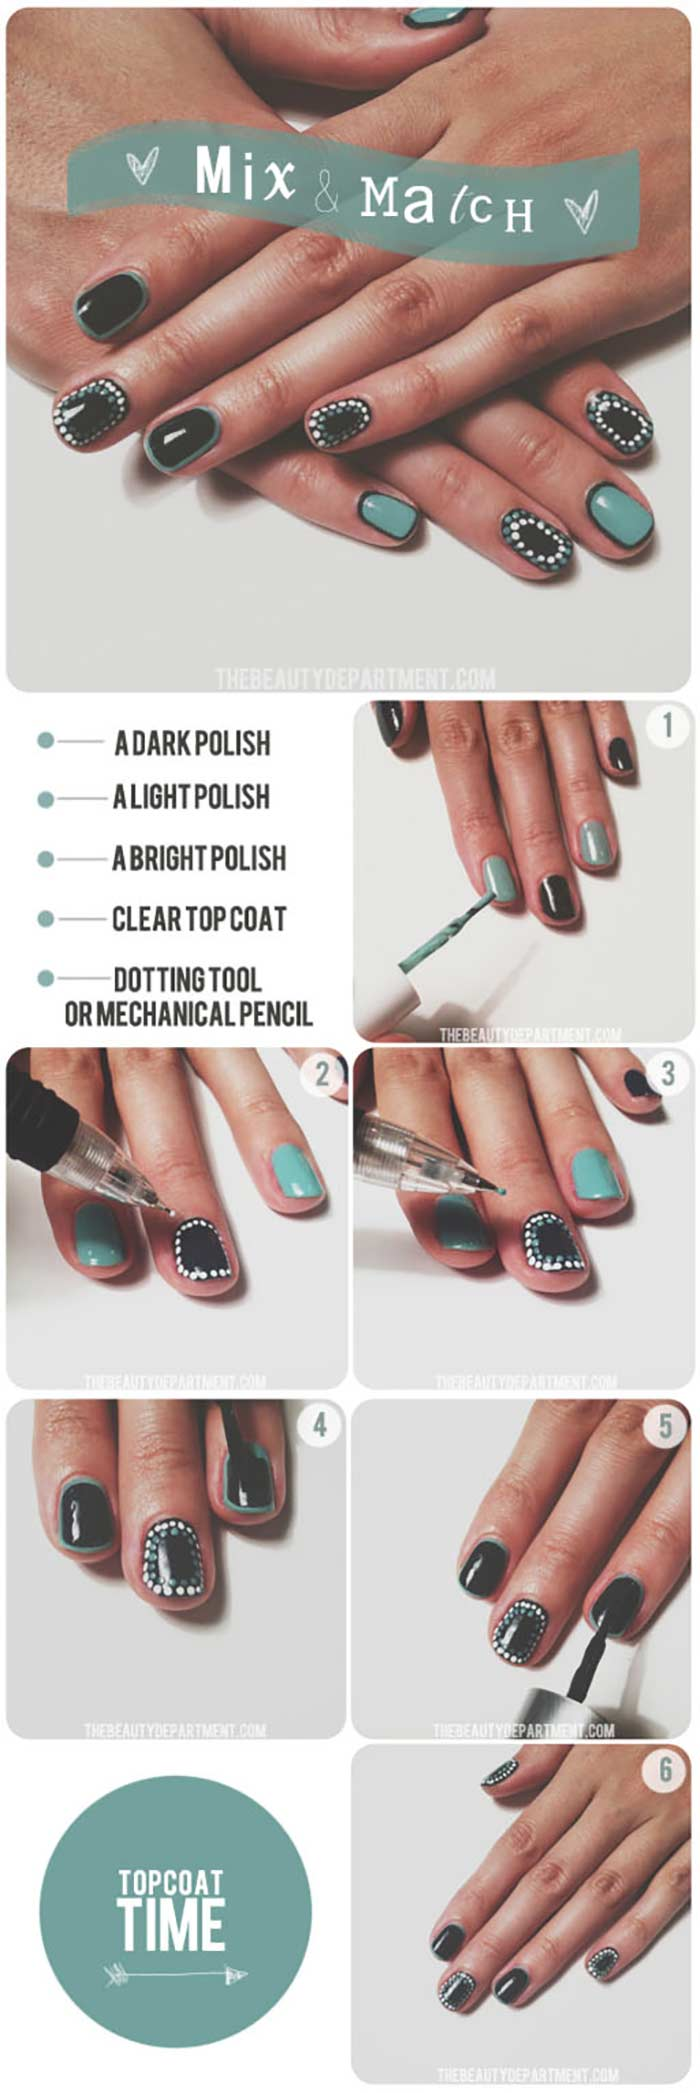 Mix And Match Polka Dots - Short Nail Designs